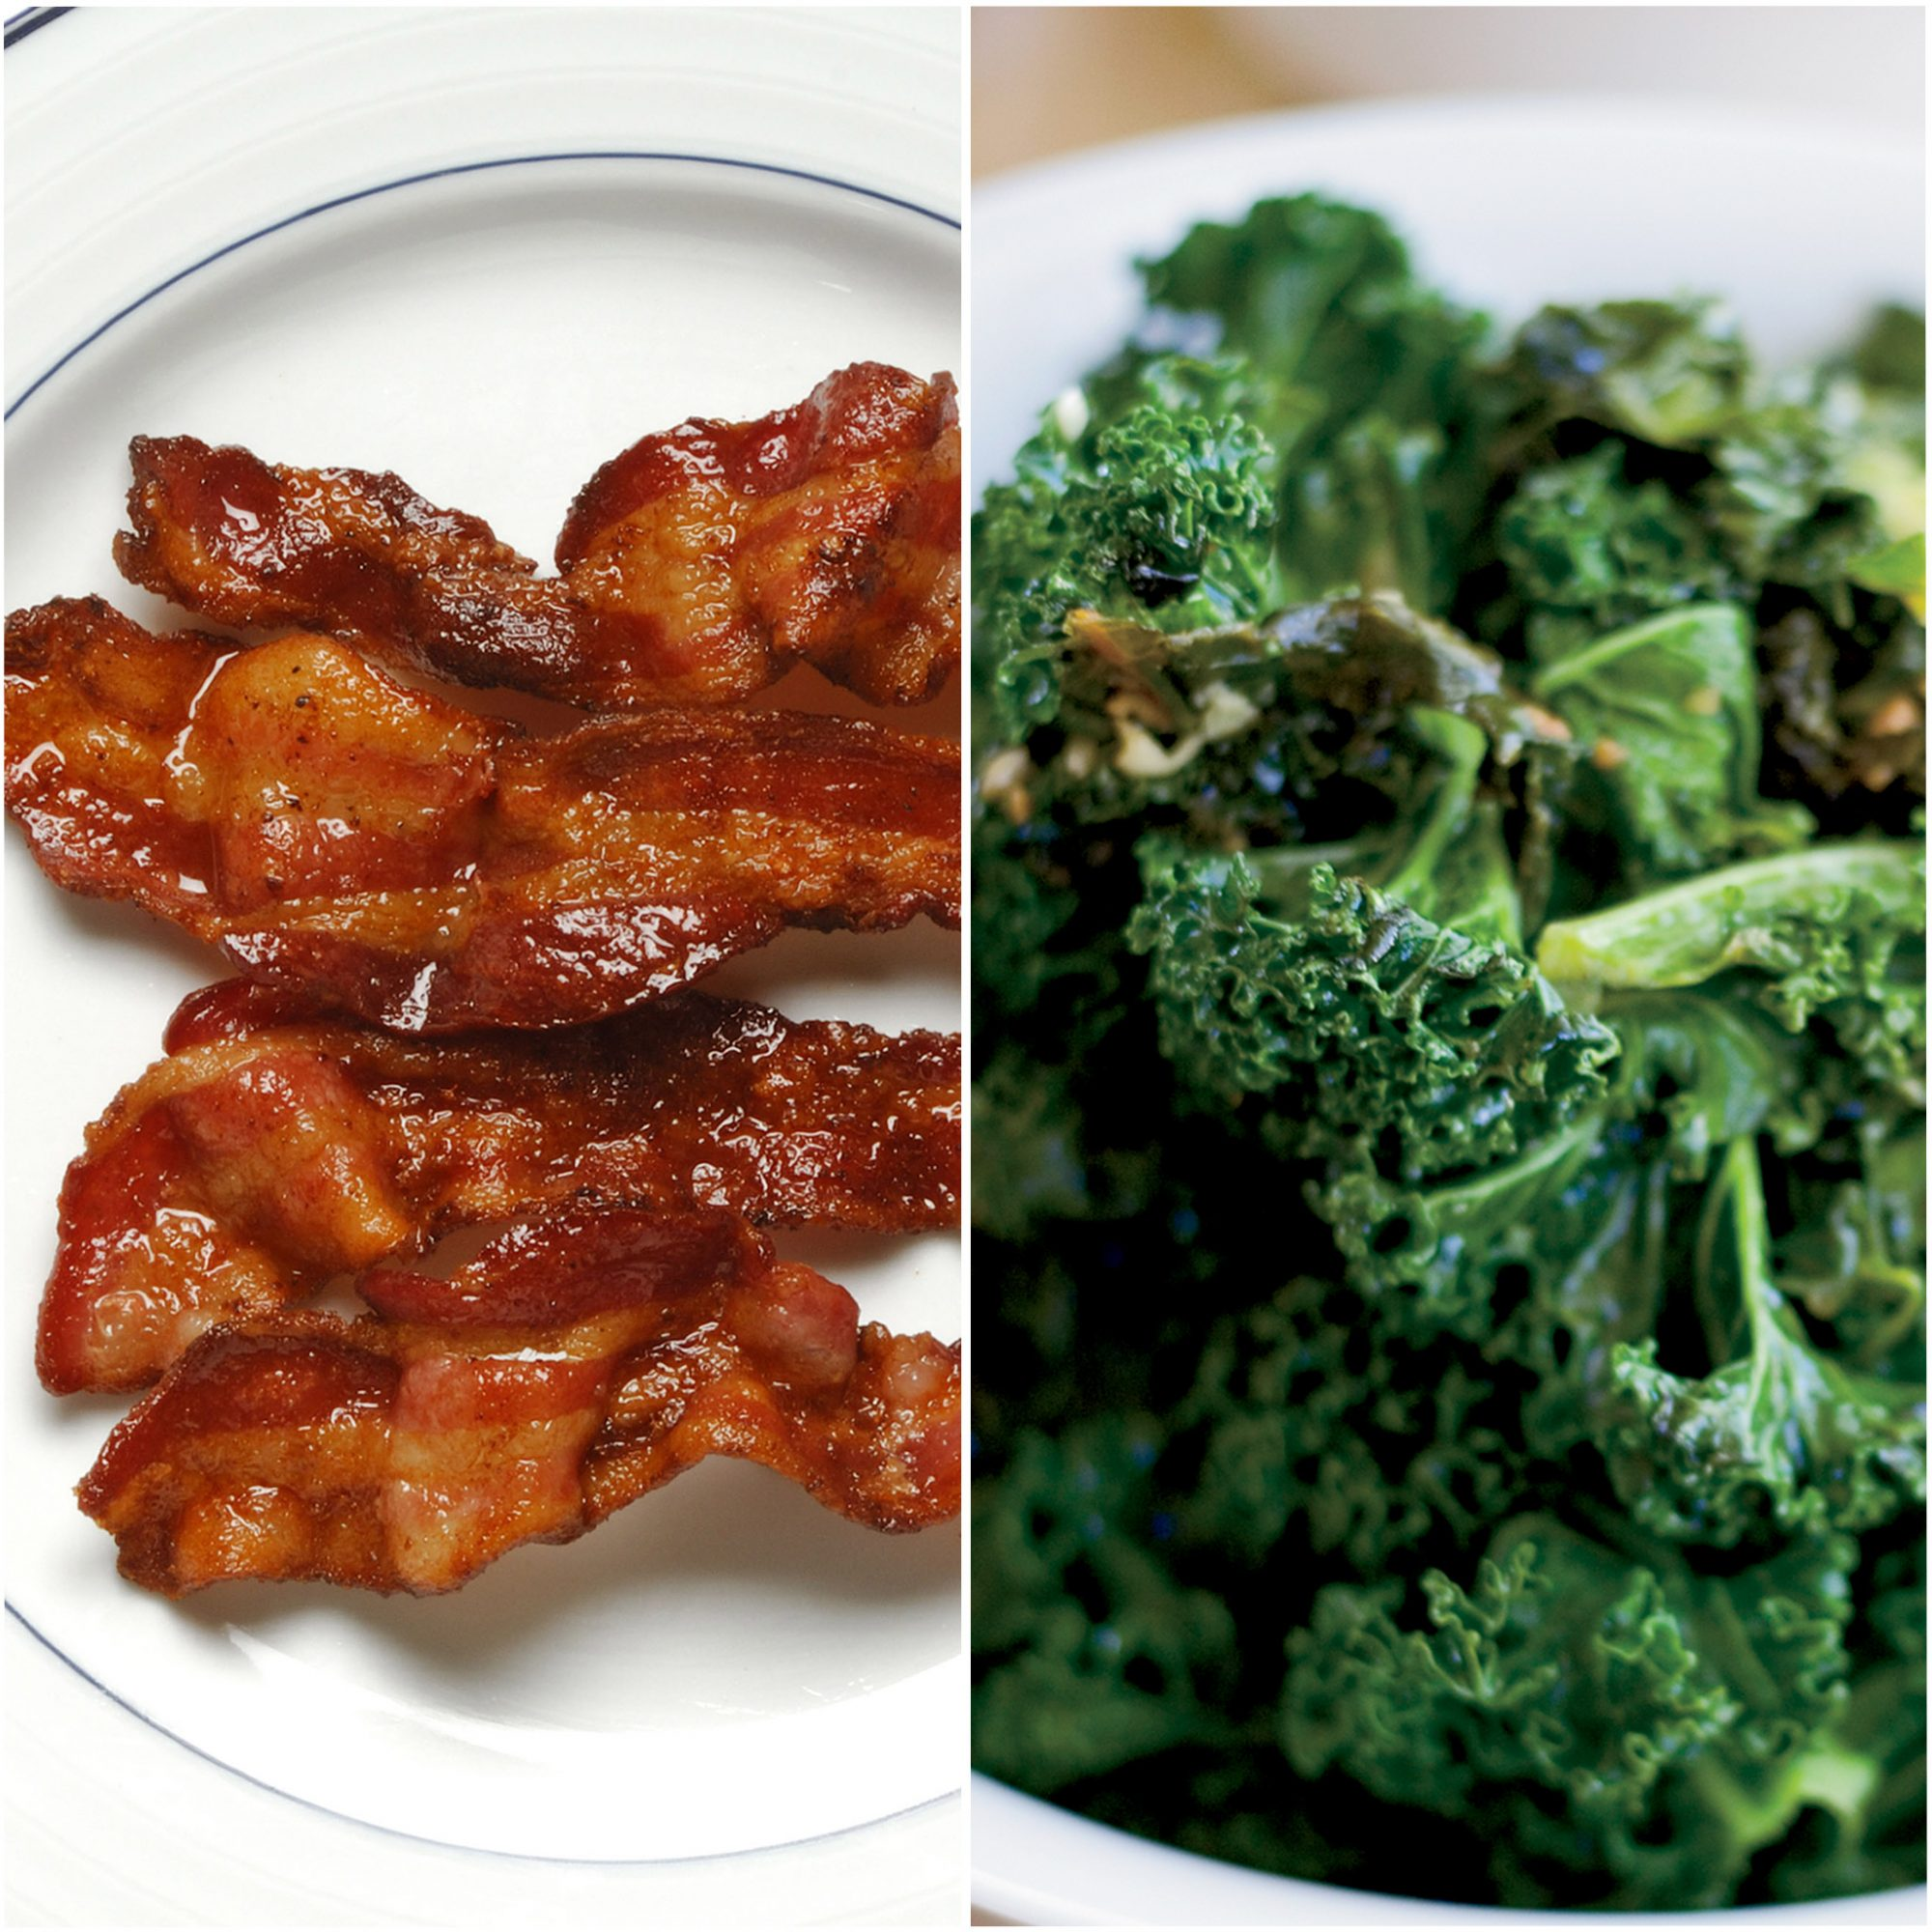 Bad News for Kale, Bacon and Other Dining Trends for 2015